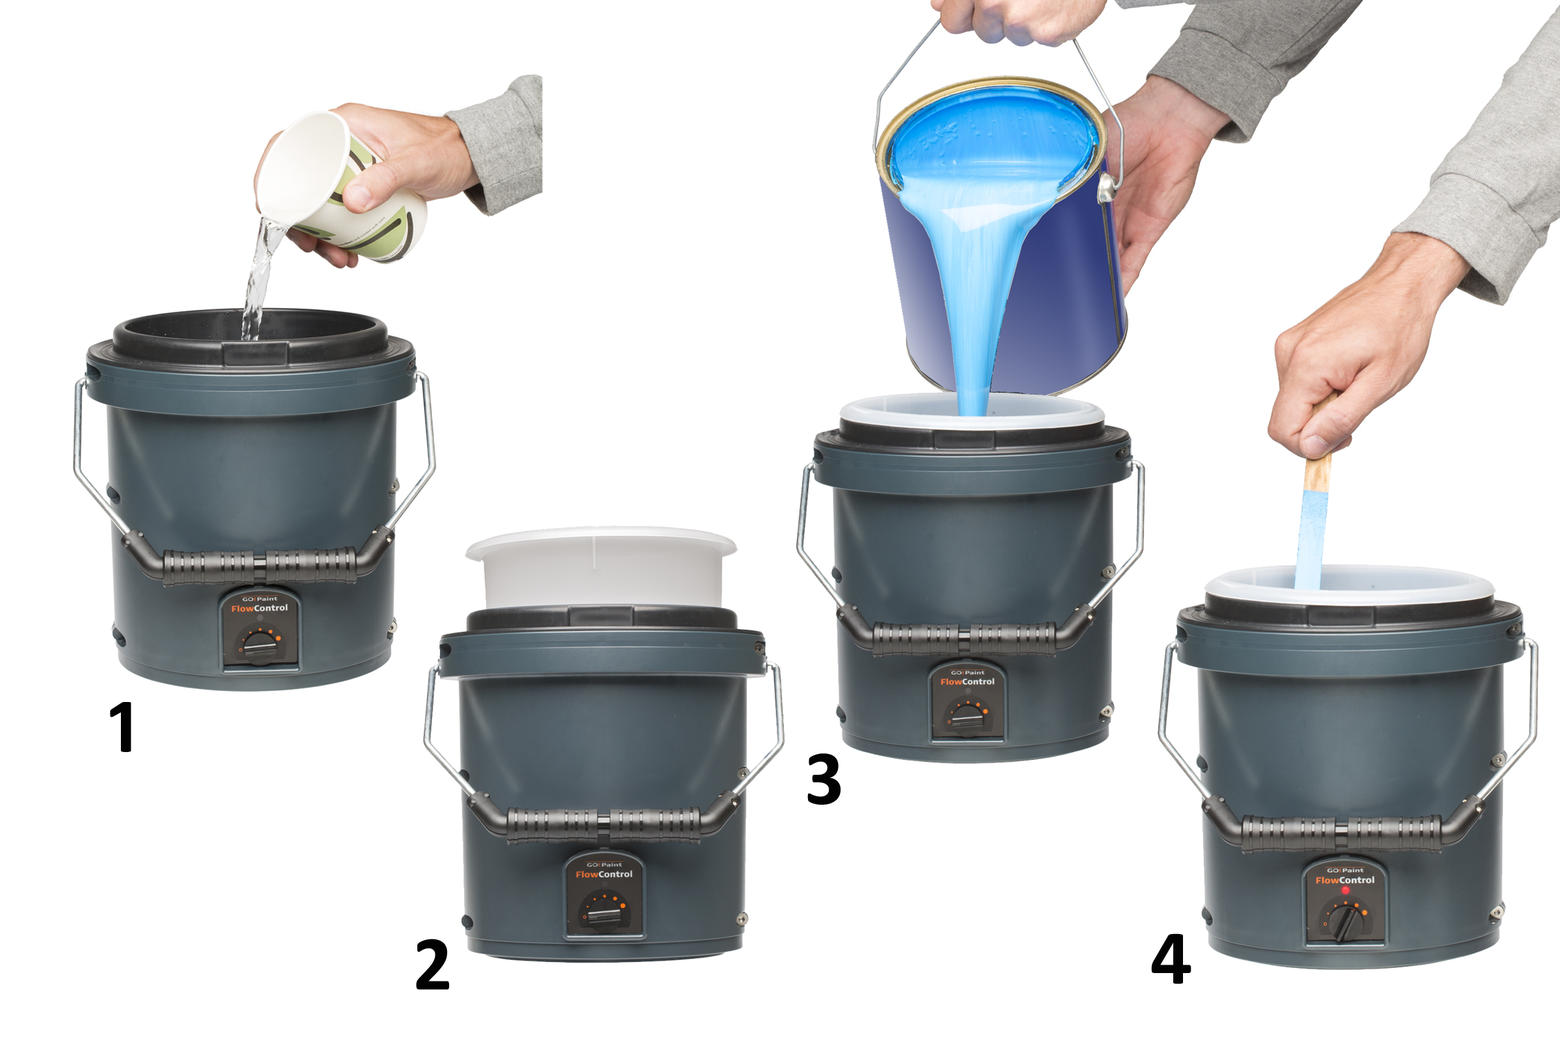 Fill with 180 ml (warm) water, place liner, add paint, set temperature and stirr.